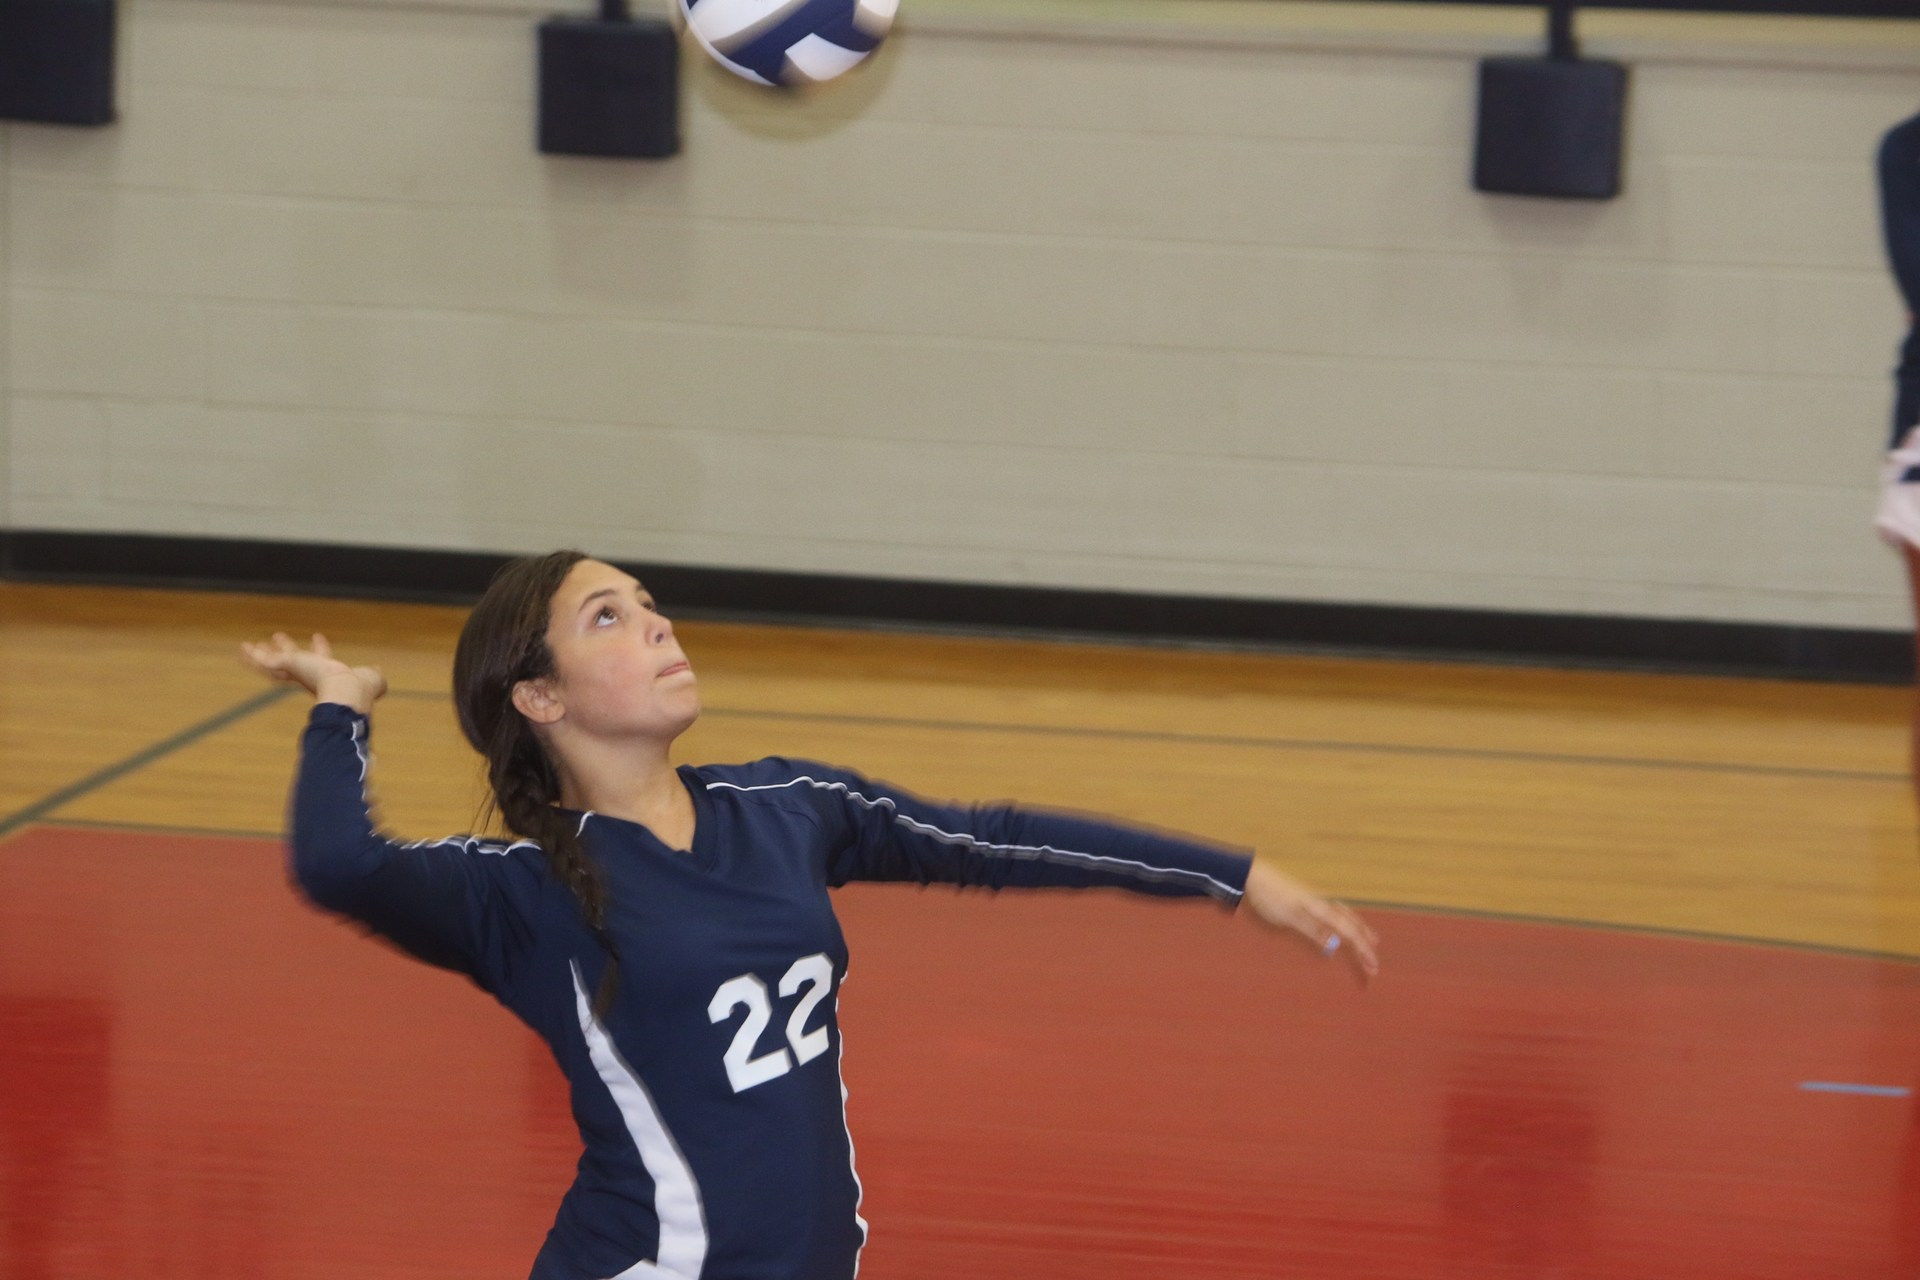 girl swinging to hit volleyball